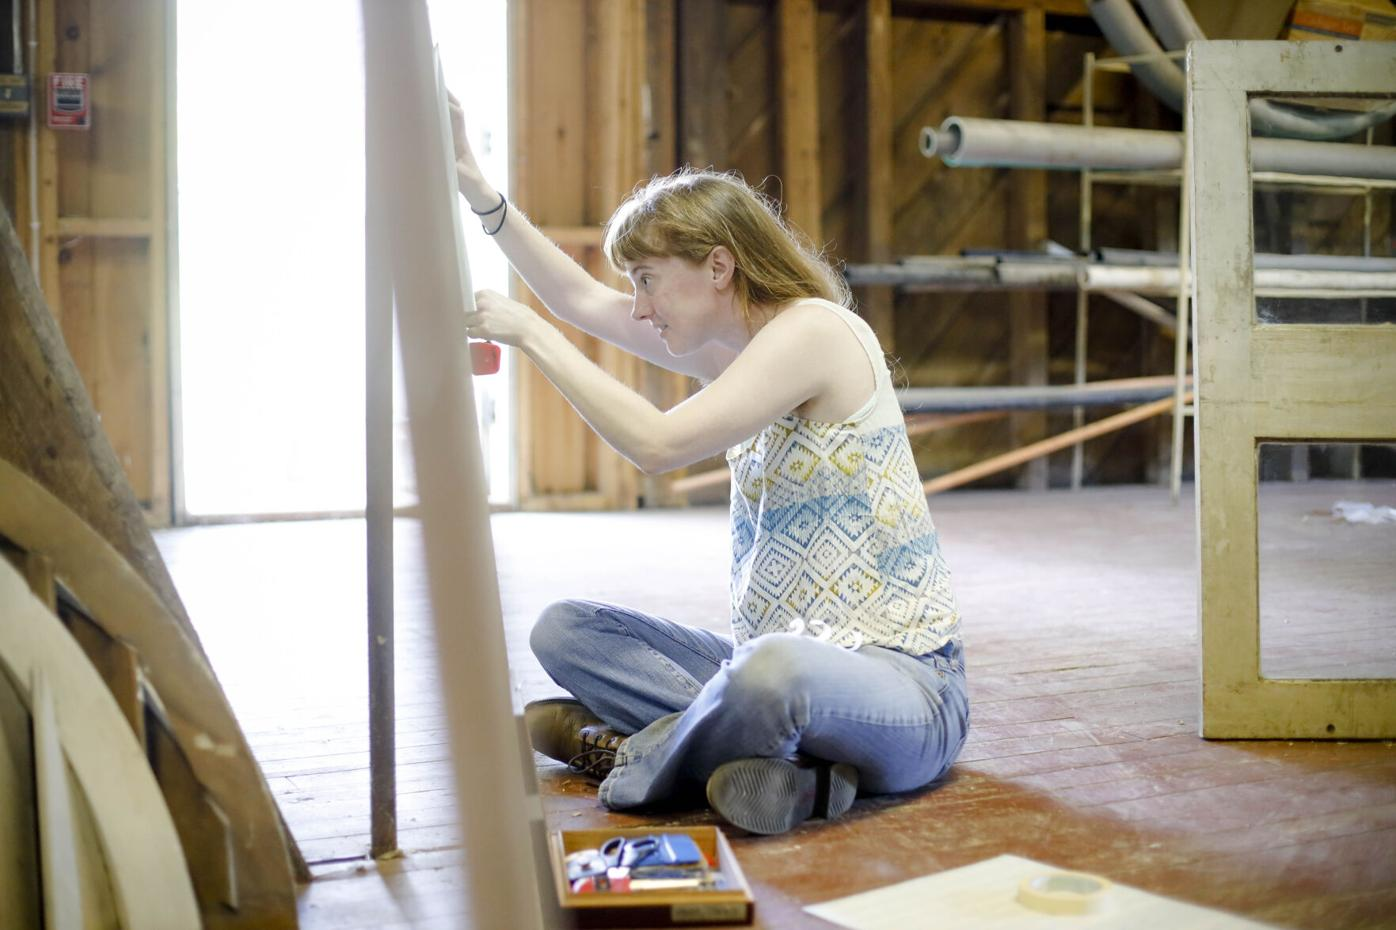 Molly Rideout, Artist in Residence at The Mount